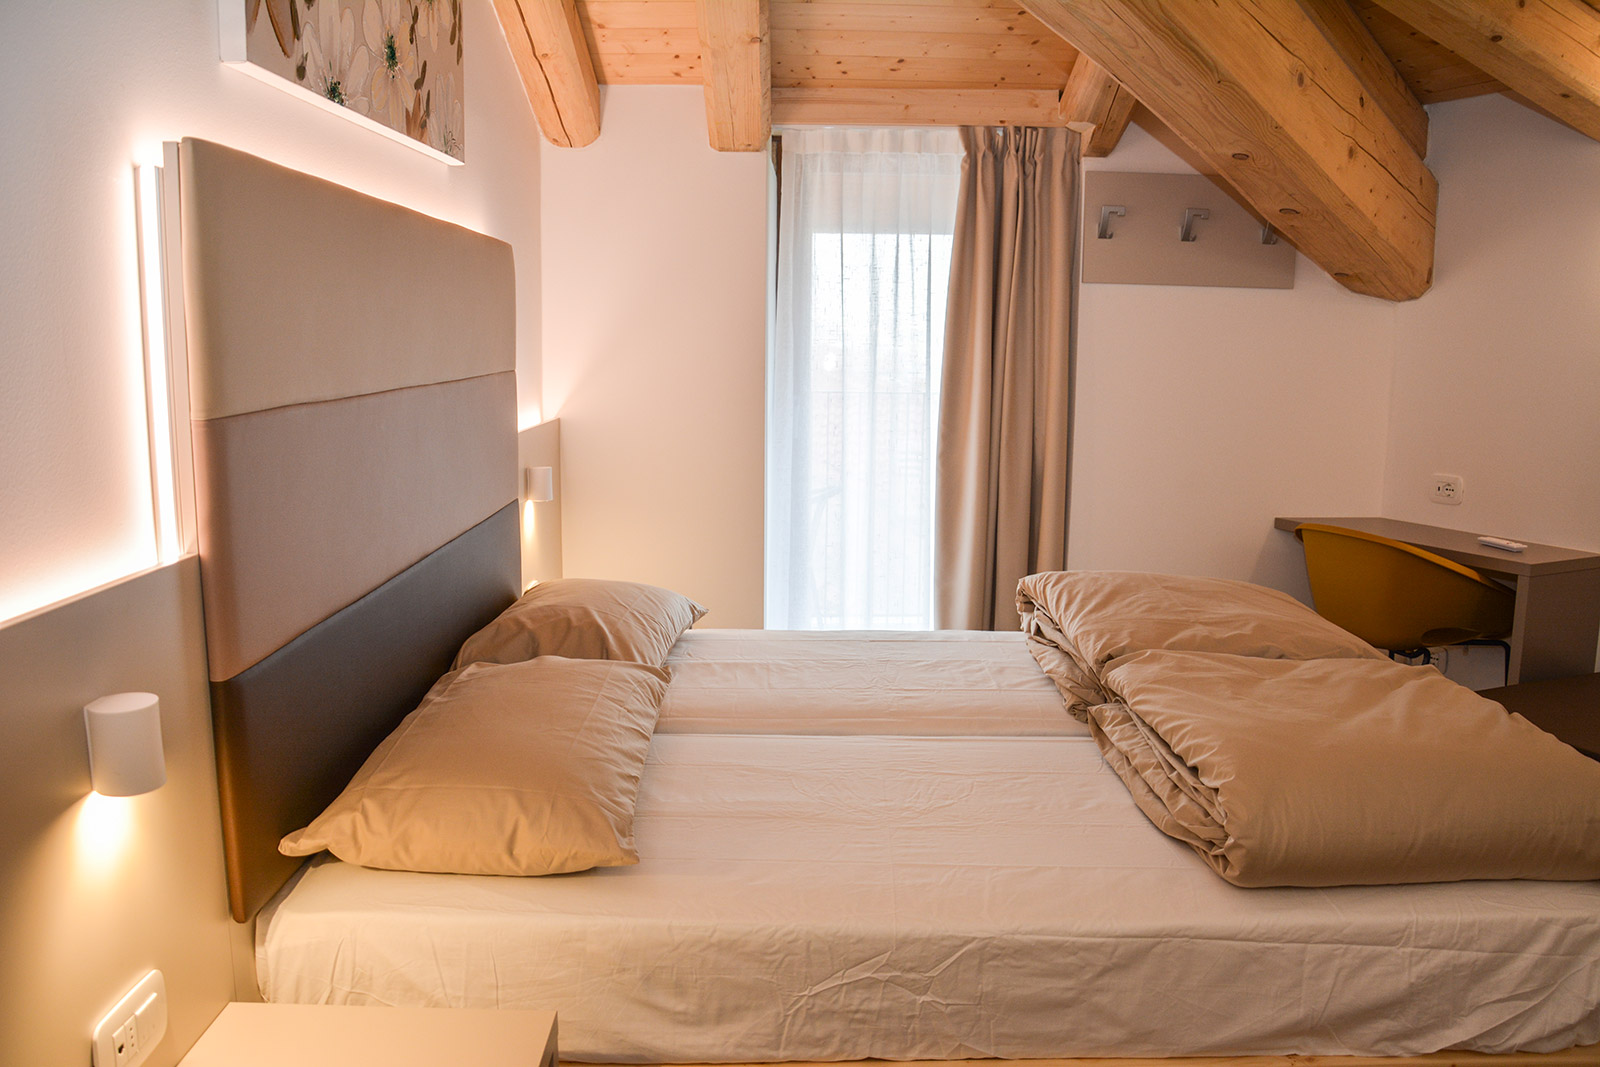 Le nostre Camere - B&B Theresia